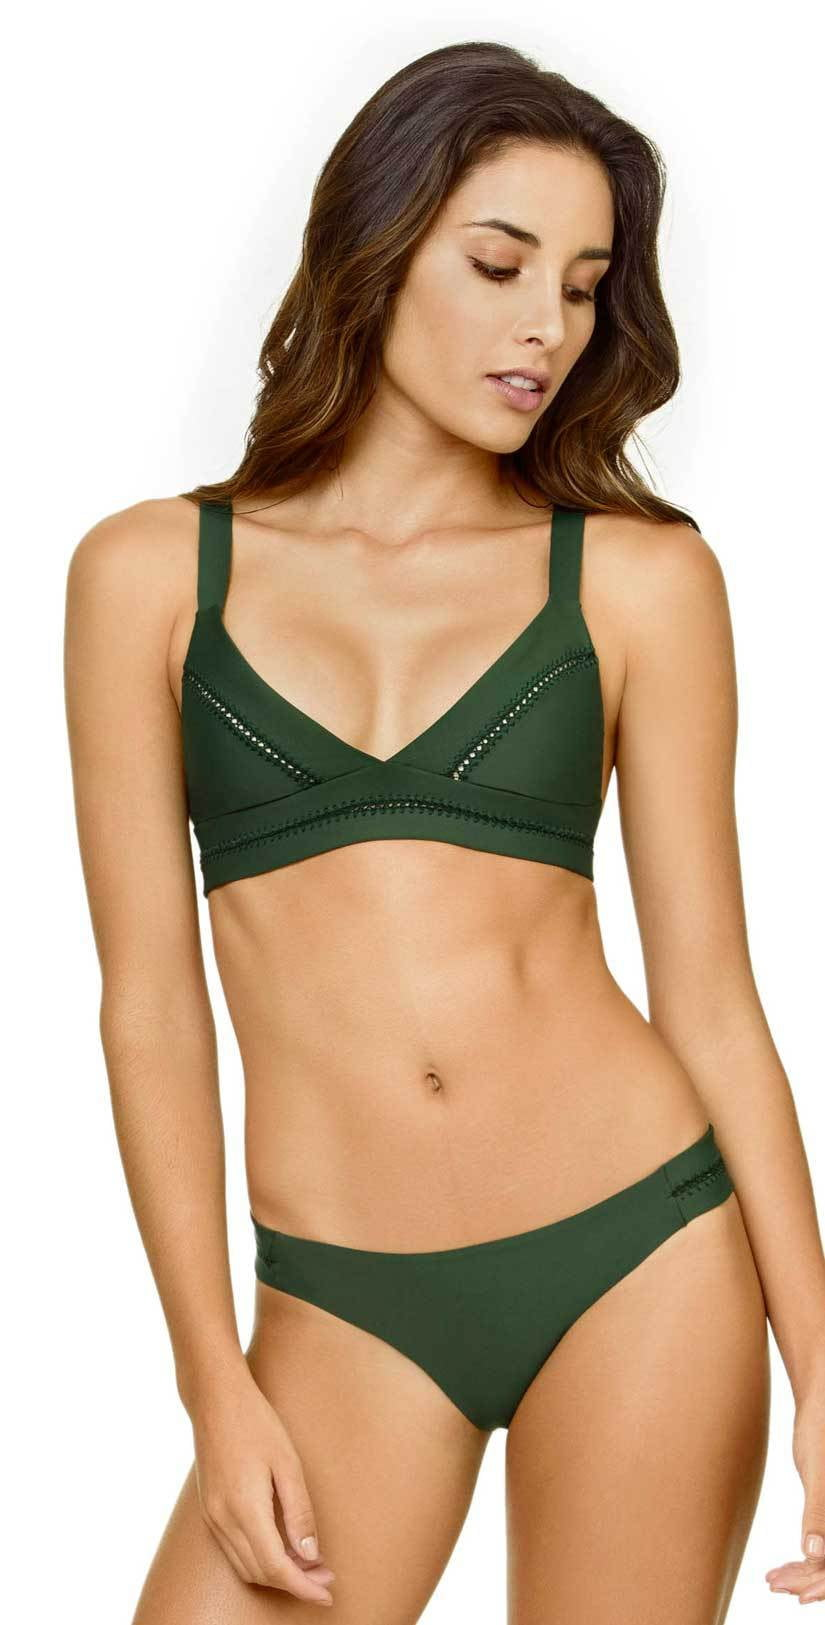 PilyQ Envy Stitched Tab Teeny Cut Bottom in Green: